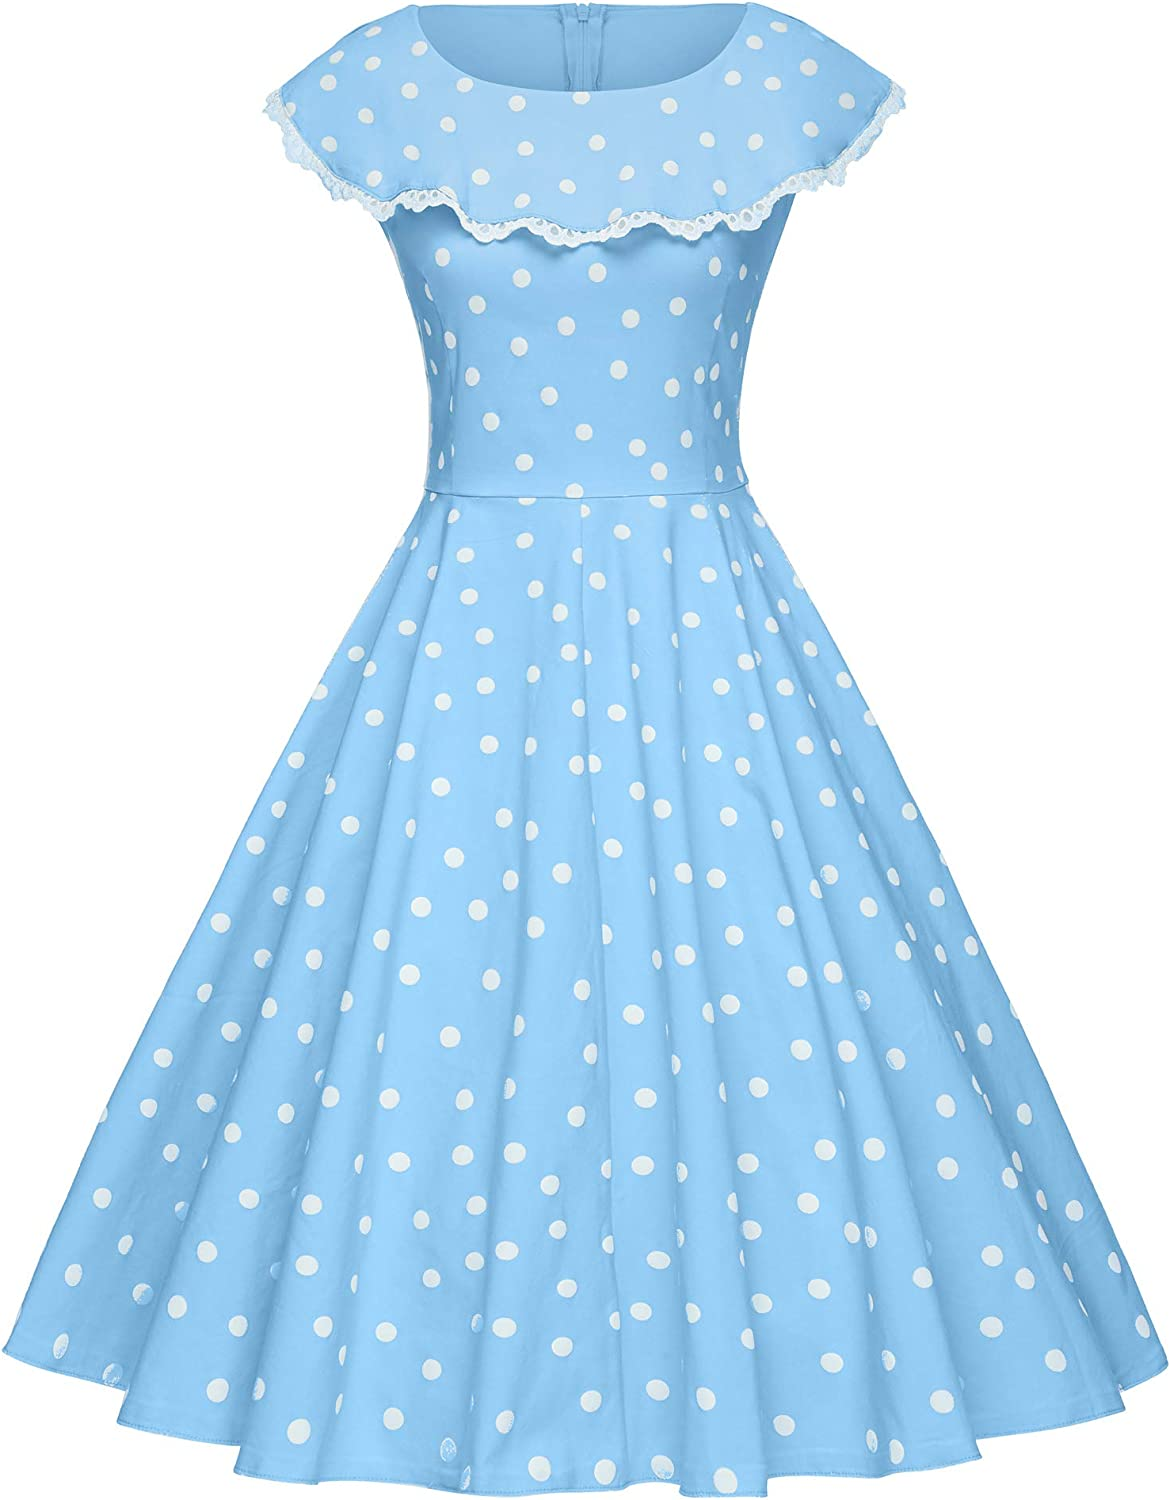 GownTown Vintage Polka Dot Retro Cocktail Prom Dresses 50's 60's Rockabilly Dresses